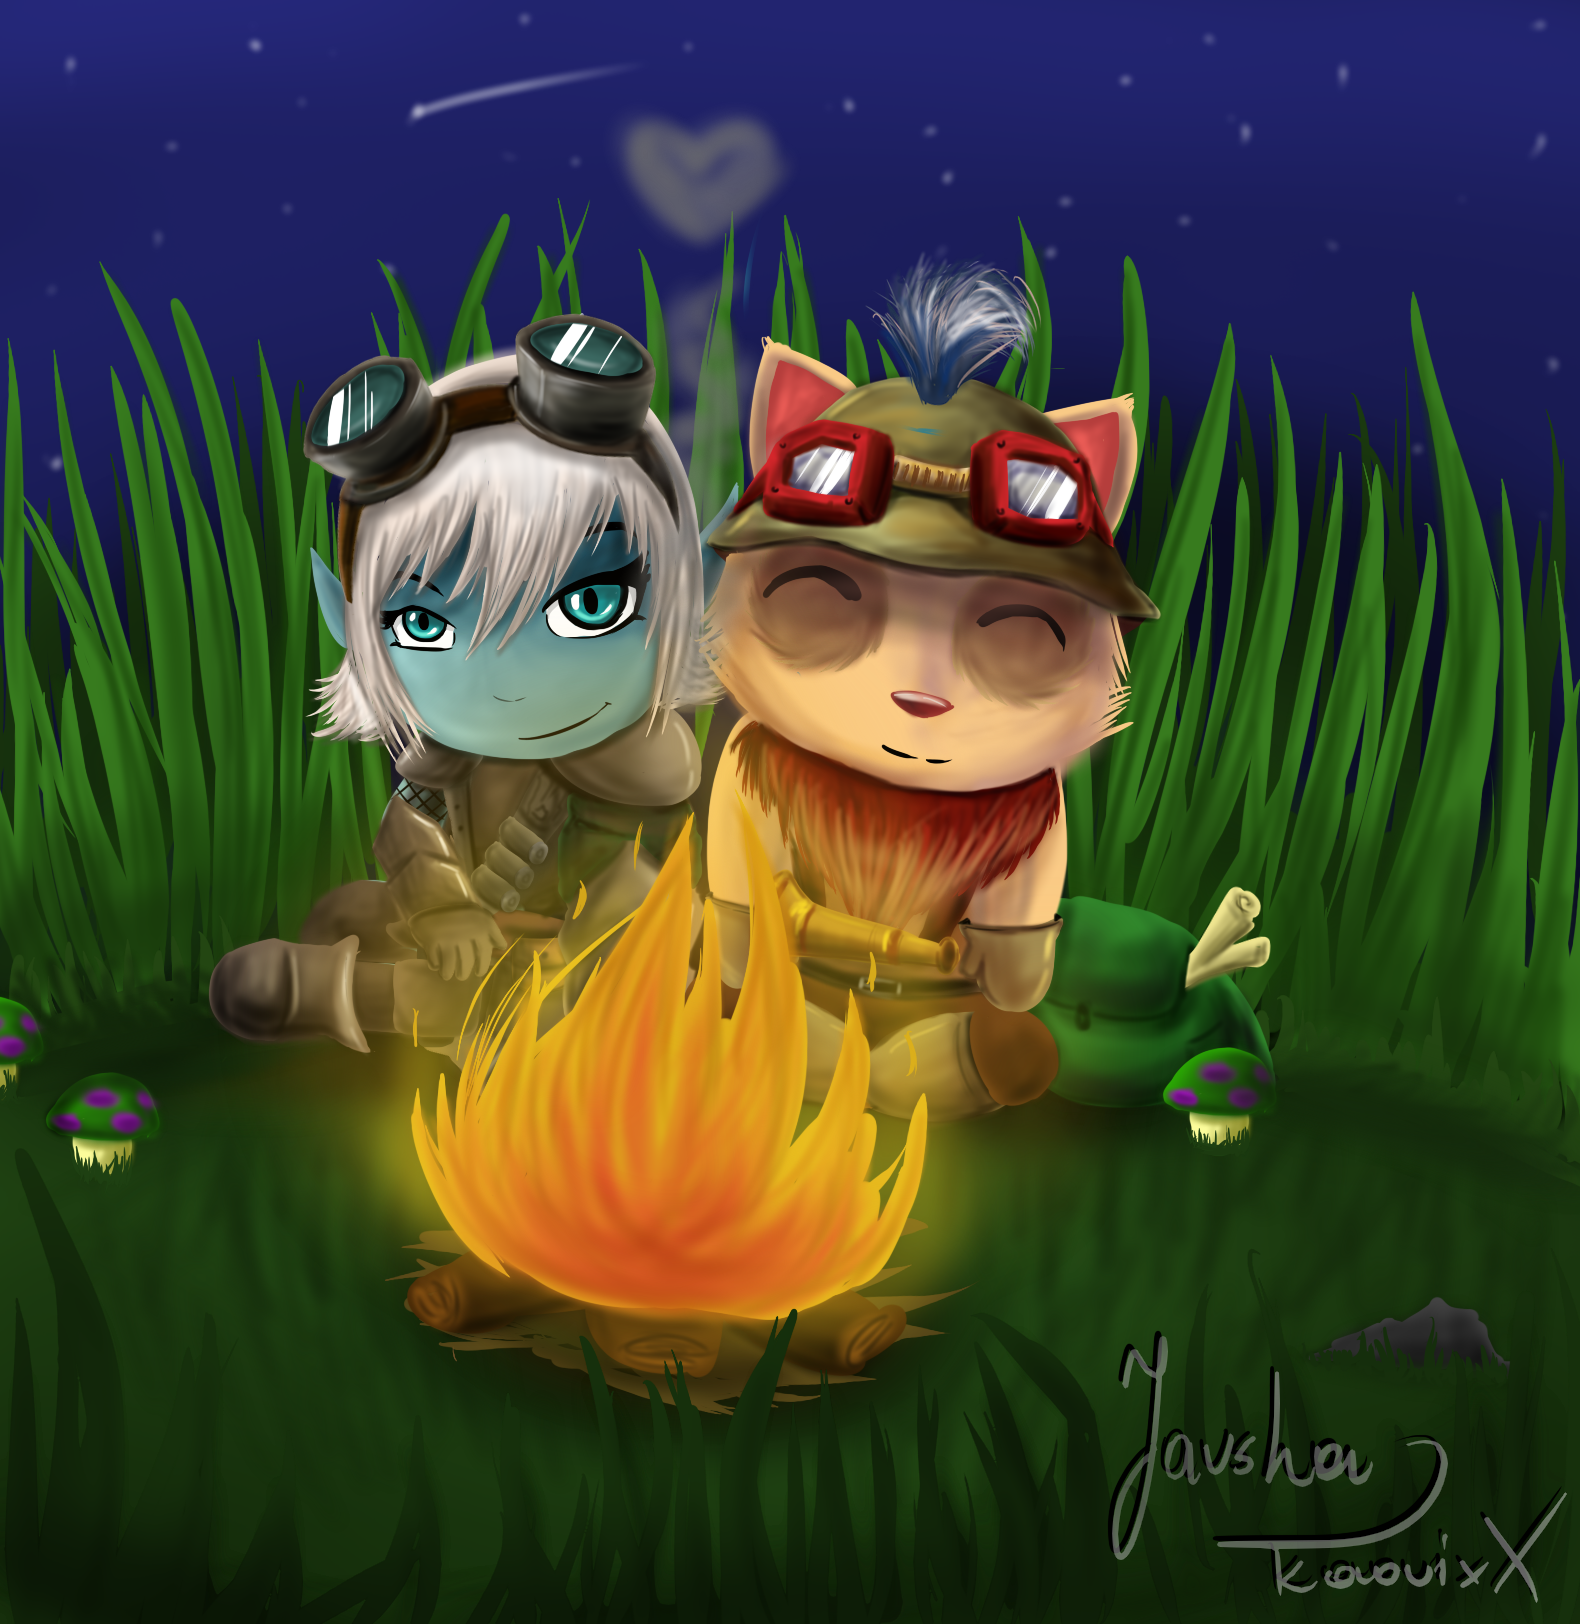 tristana and teemo relationship